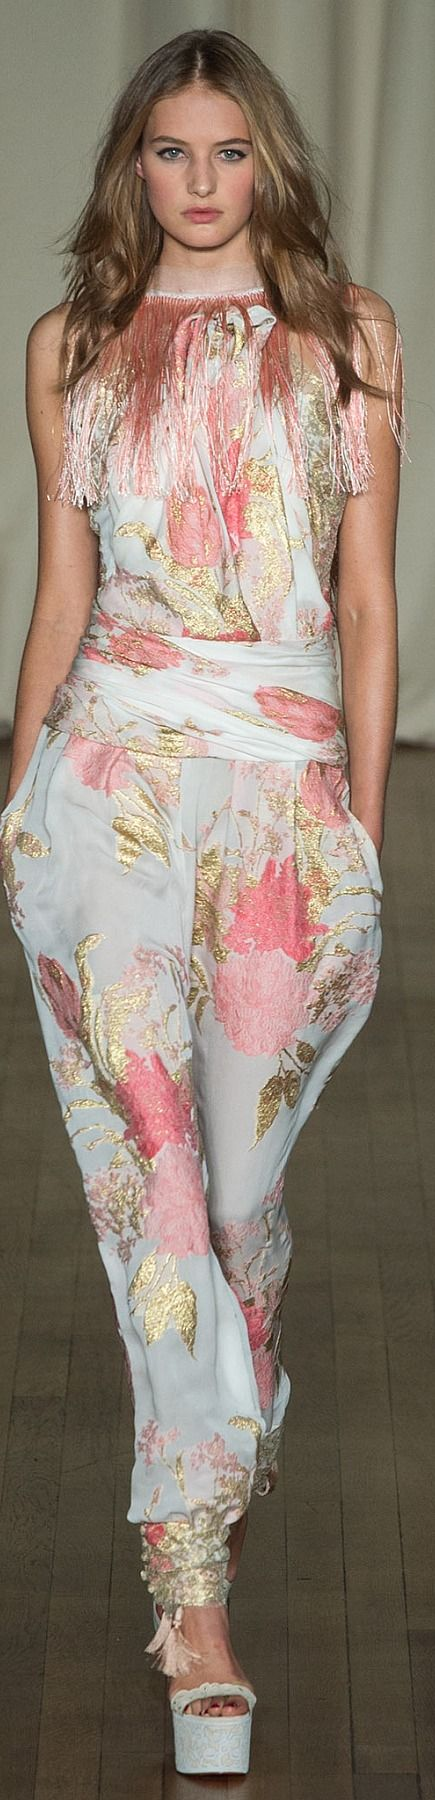 Marchesa Spring 2015 | The House of Beccaria#